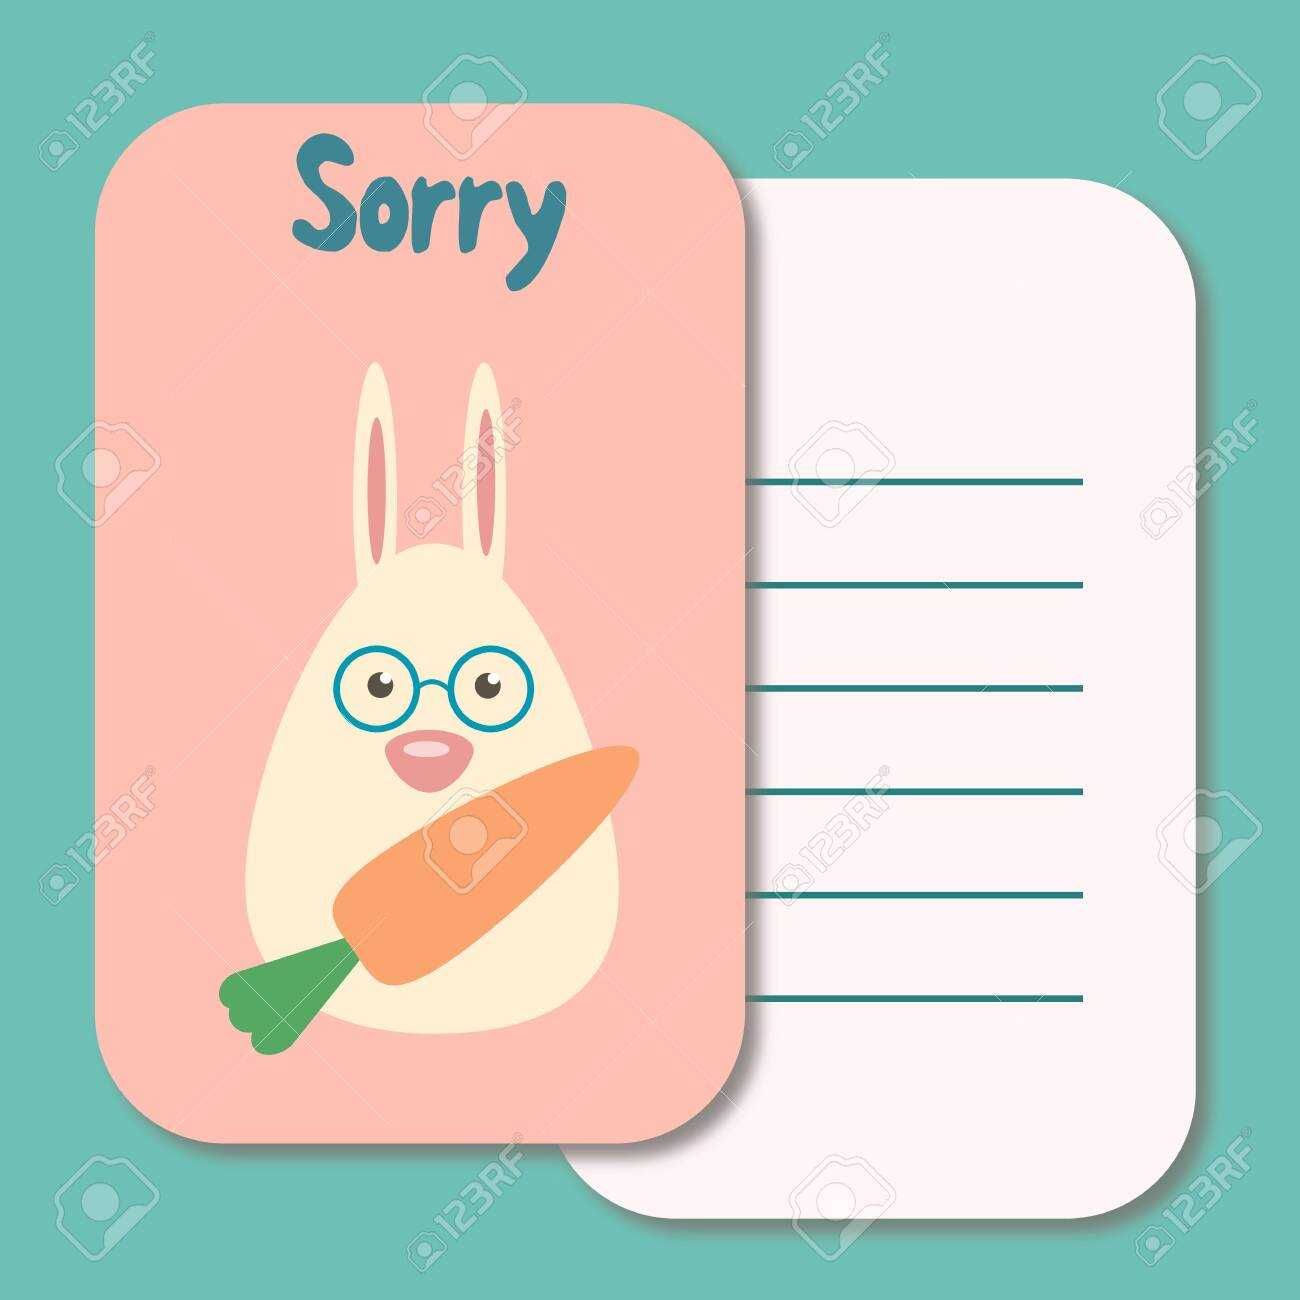 Cute Printable Illustration Sorry Card Typography Design Background.. For Sorry Card Template